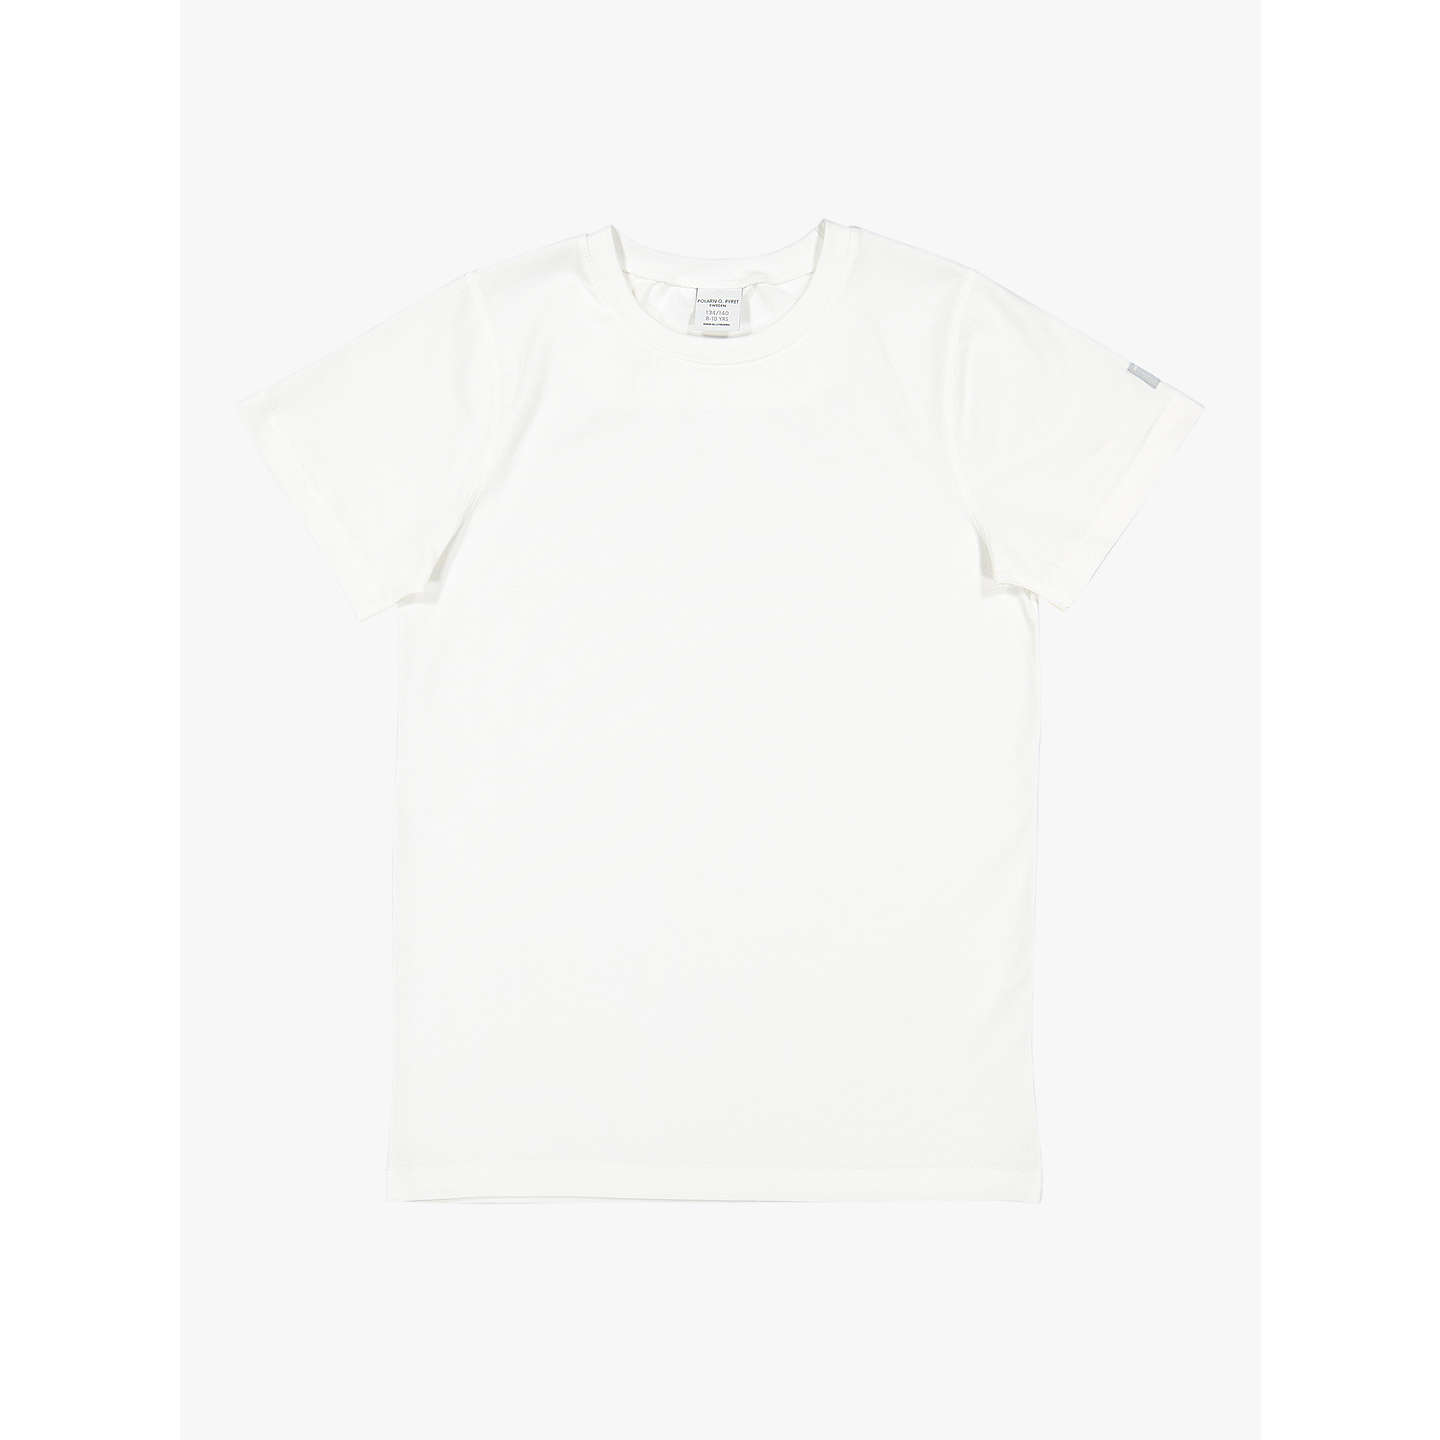 BuyPolarn O. Pyret Baby Cotton T-Shirt, White, 6-9 months Online at johnlewis.com